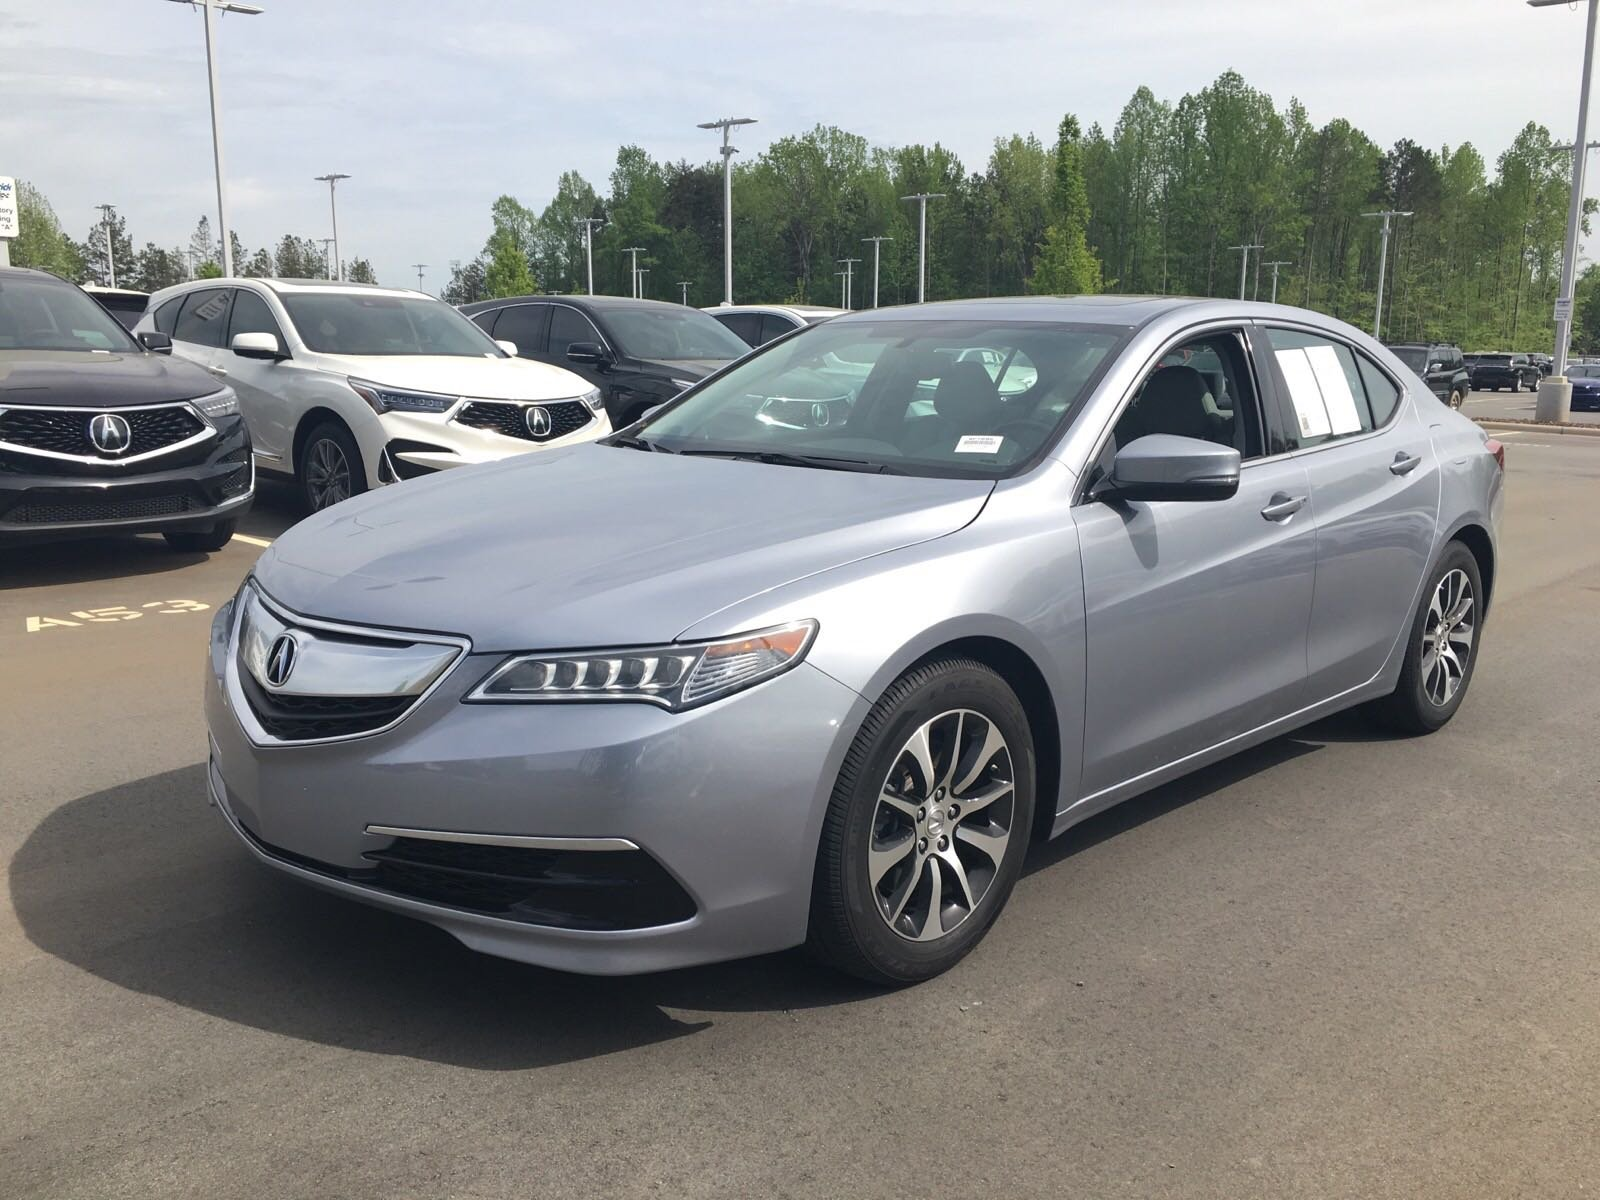 Acura Certified Pre Owned New Certified Pre Owned 2016 Acura Tlx Fwd 4dr Sdn Fwd In Buford Ap7695